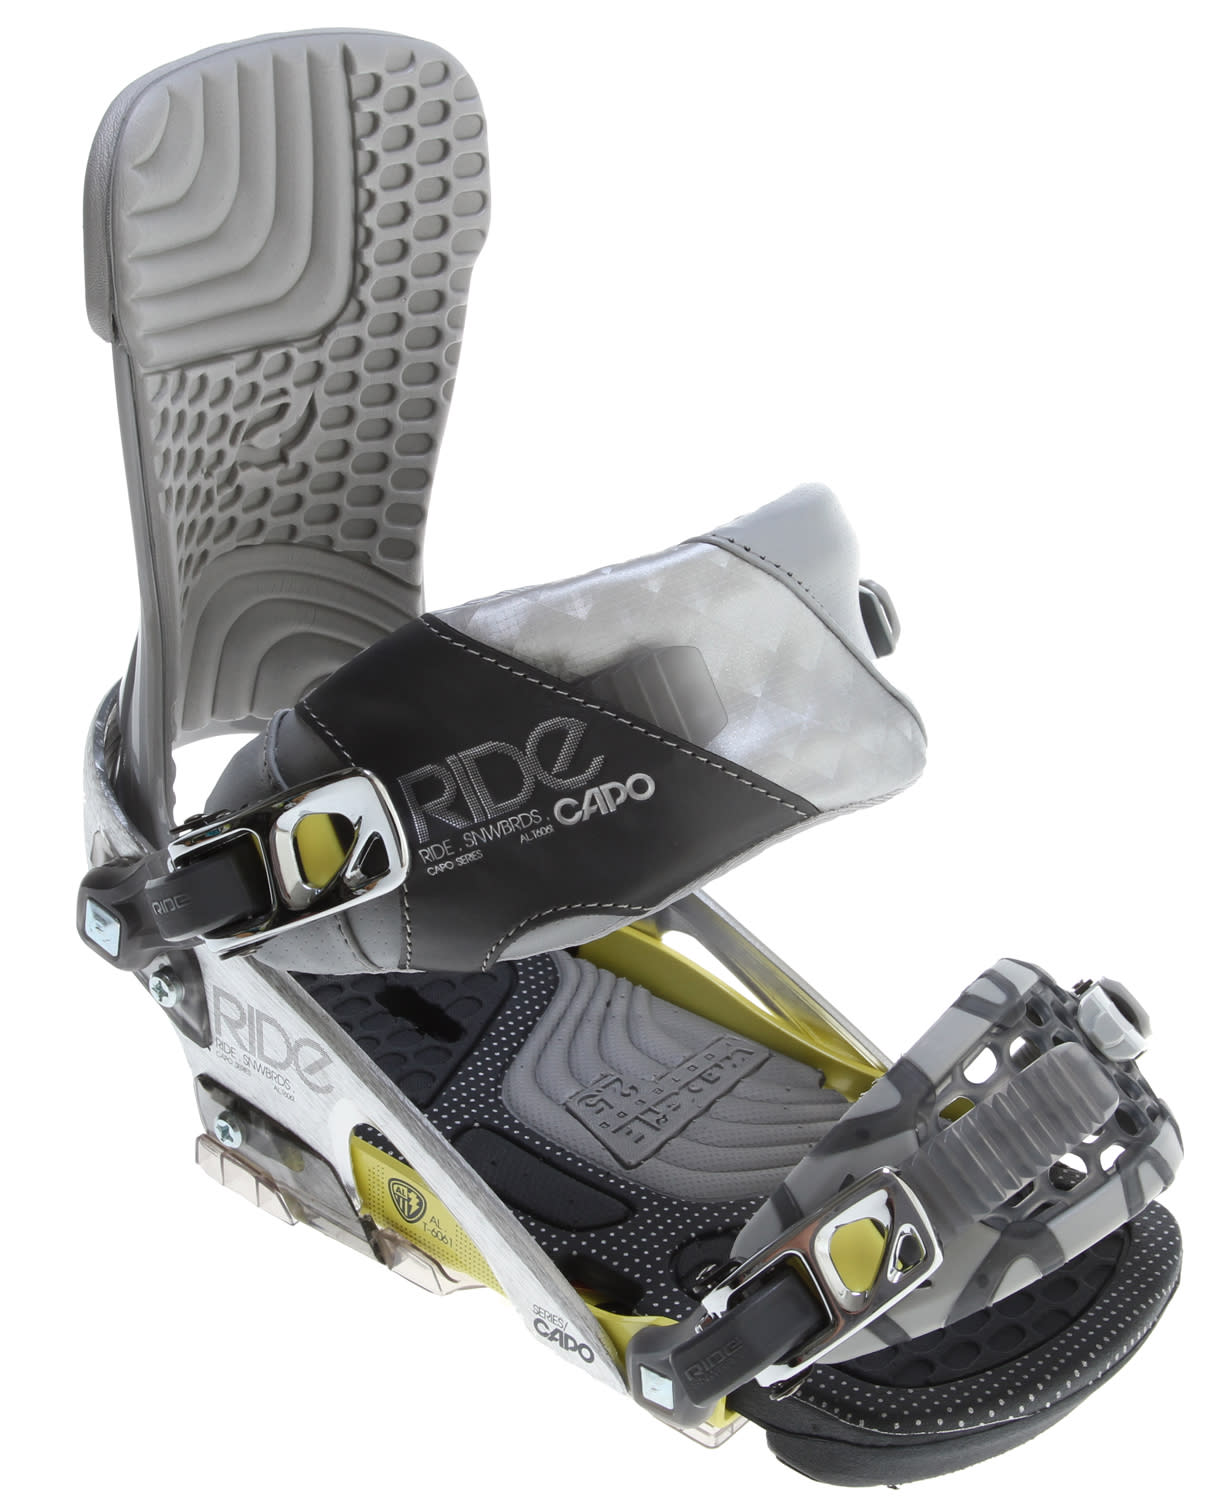 On Sale Ride Capo Snowboard Bindings Up To 60% Off